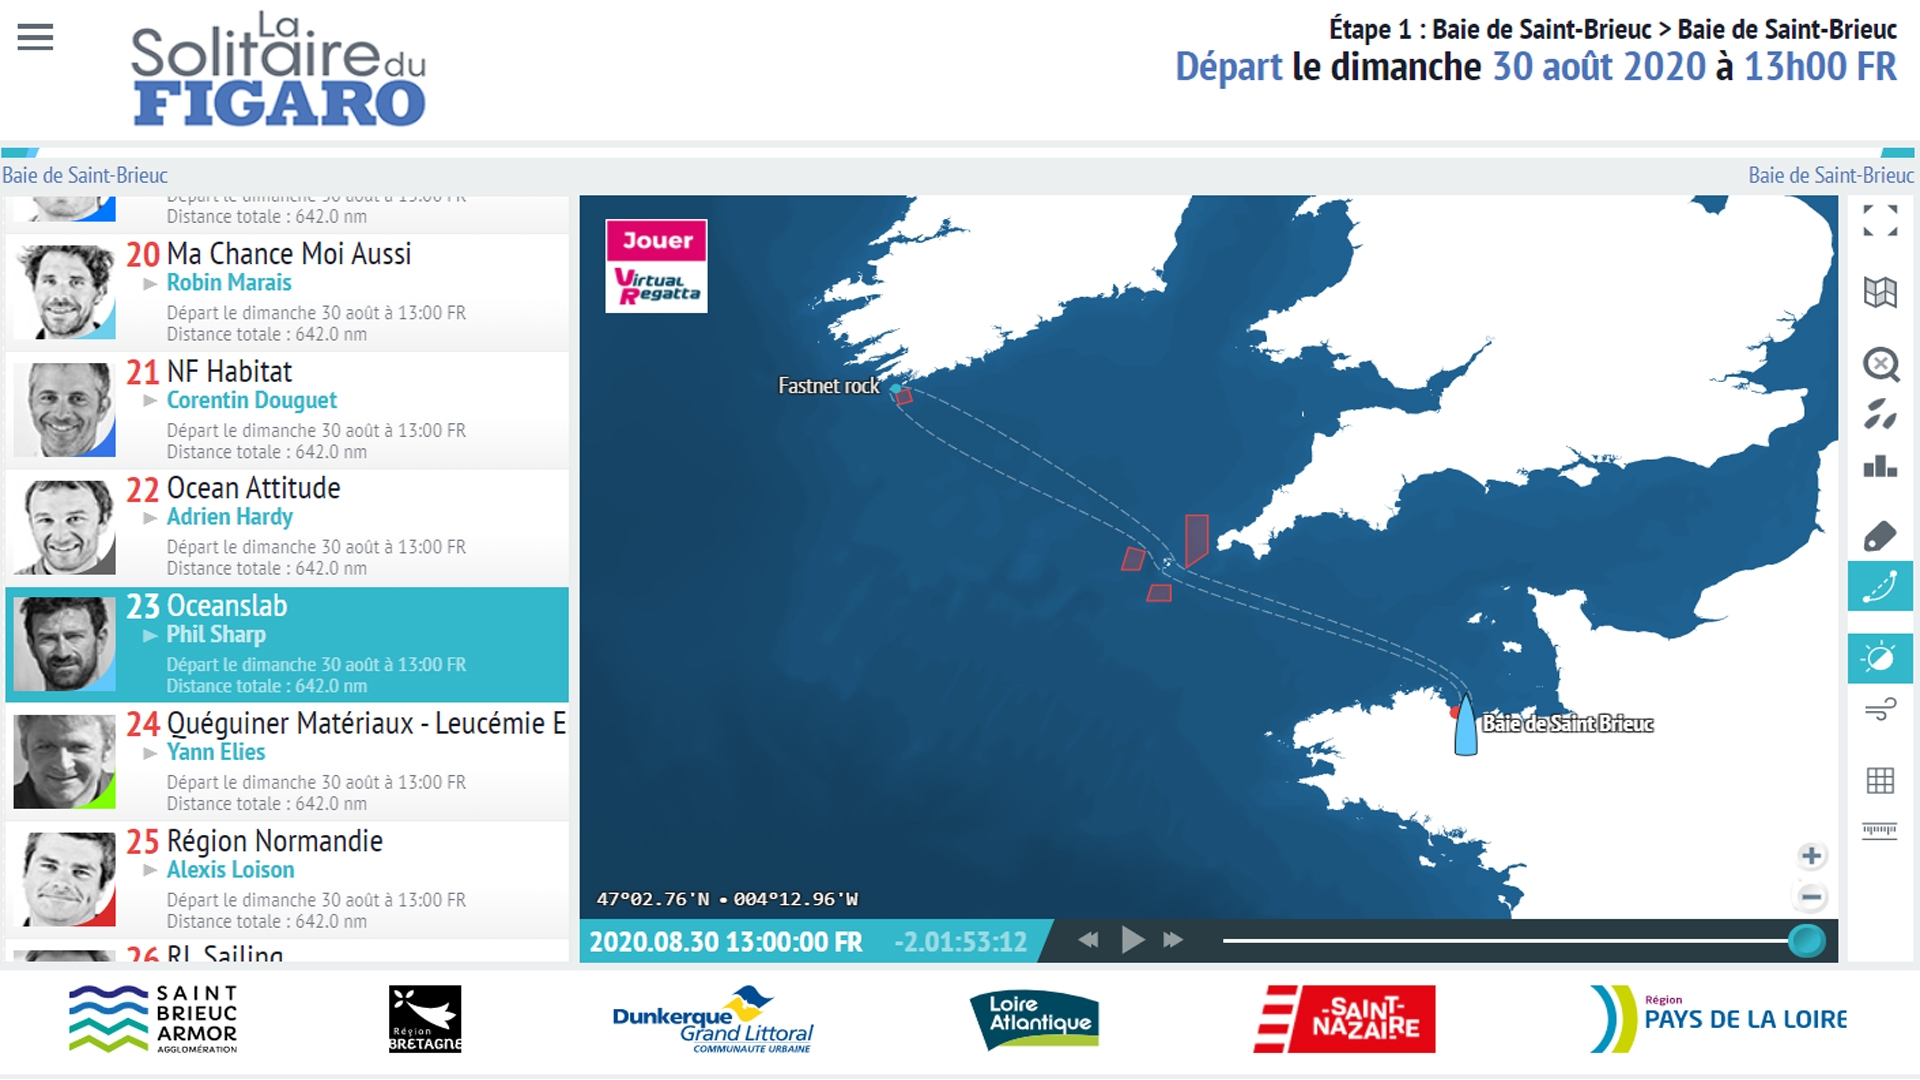 How to follow La Solitaire du Figaro